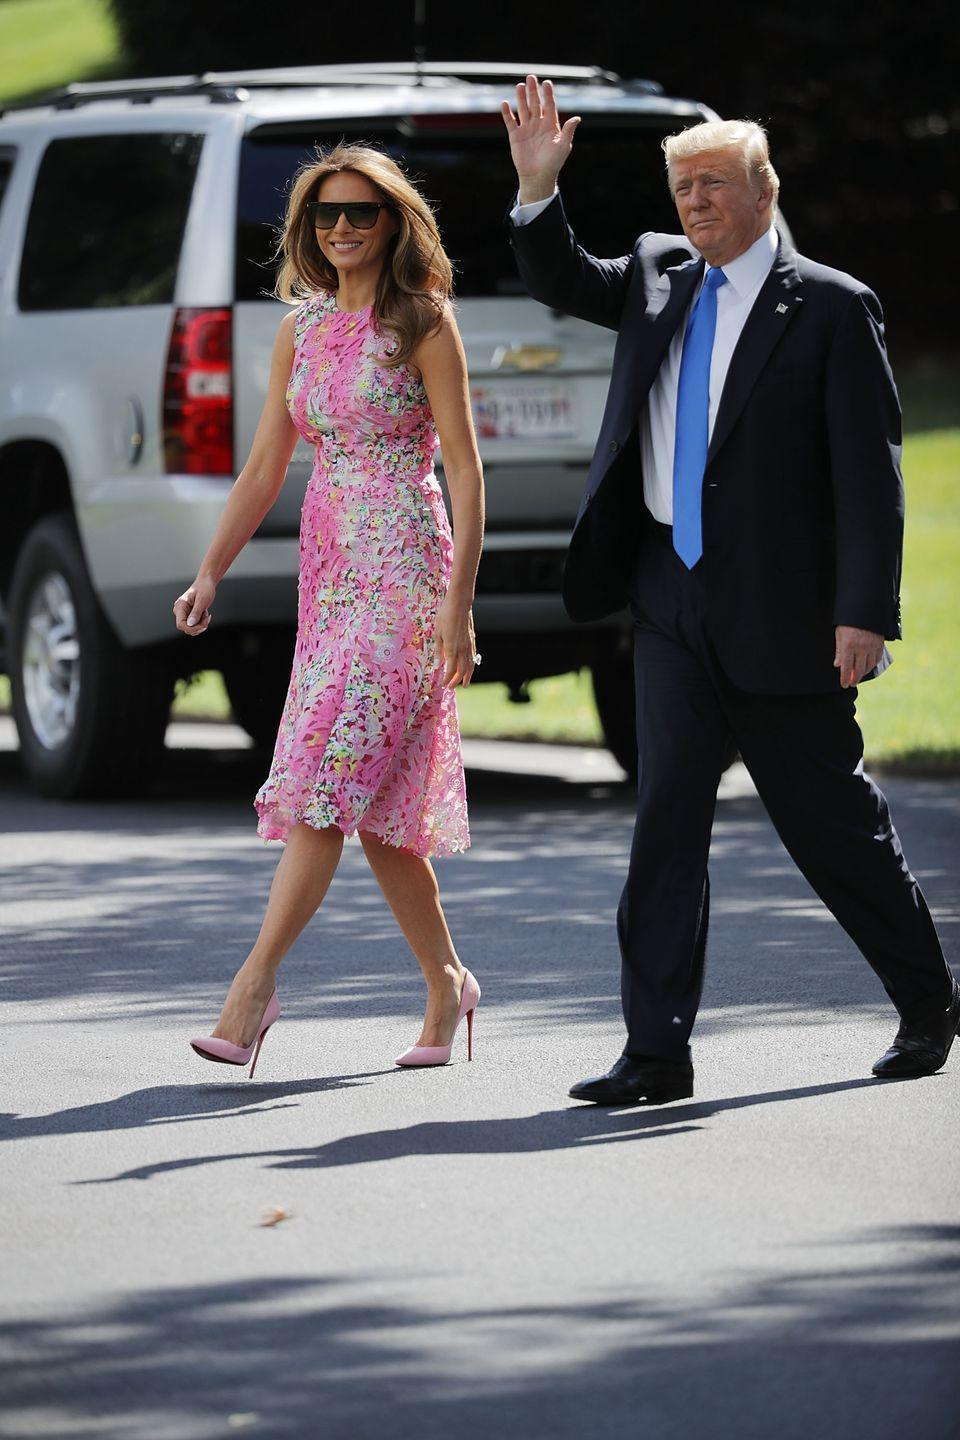 <p>It's rare to see the first lady wearing a print, but at her husband's rally in Youngstown, Ohio, Melania chose a bright floral dress by Monique Lhuillier. </p>